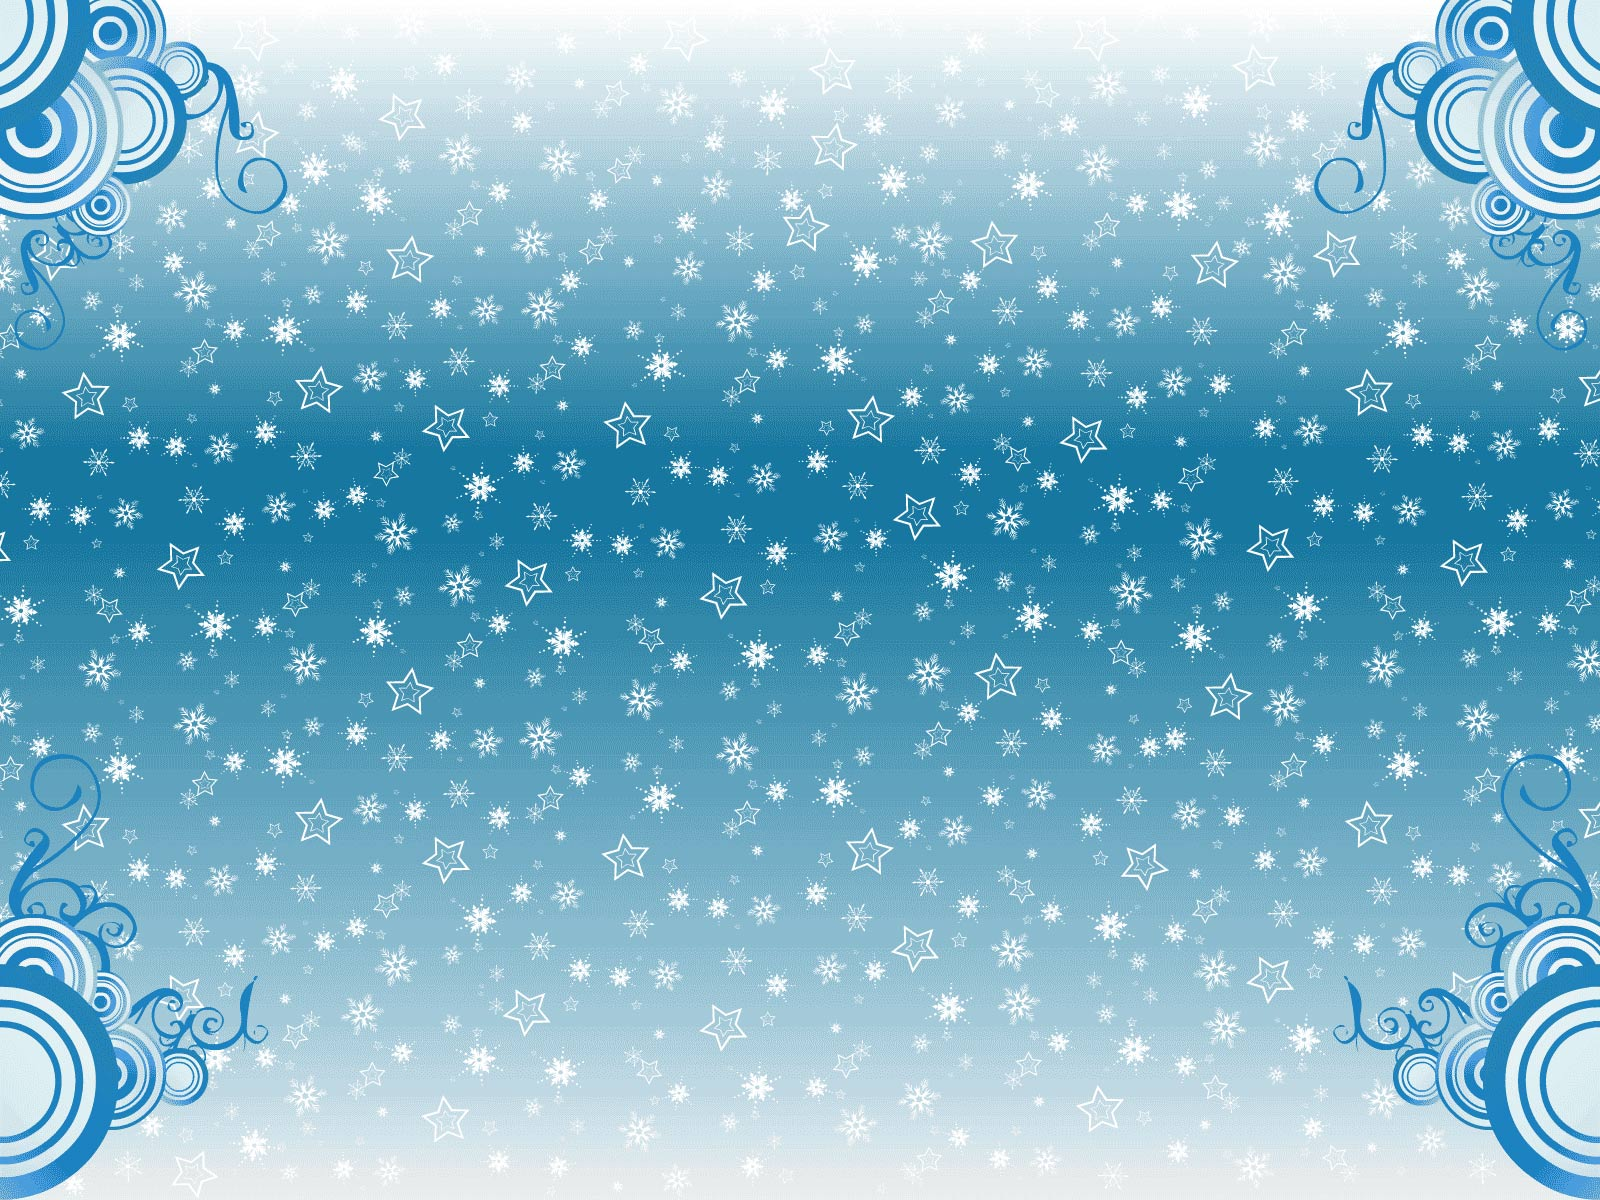 Background winter Desktop Wallpaper and make this wallpaper for your 1600x1200